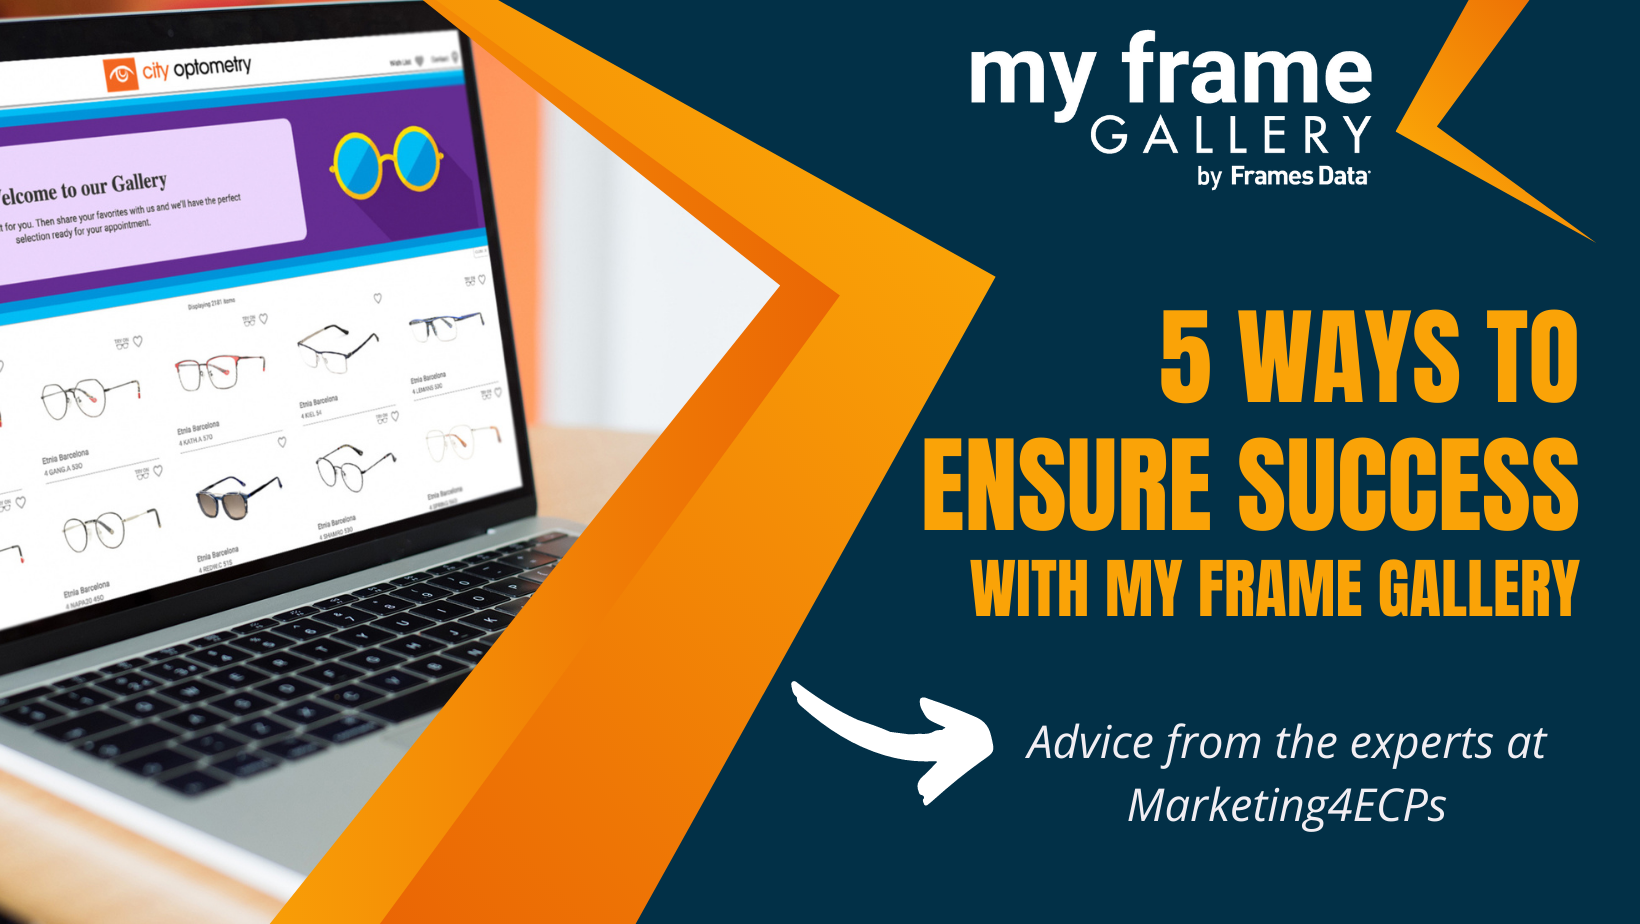 5 Things Successful Galleries Do